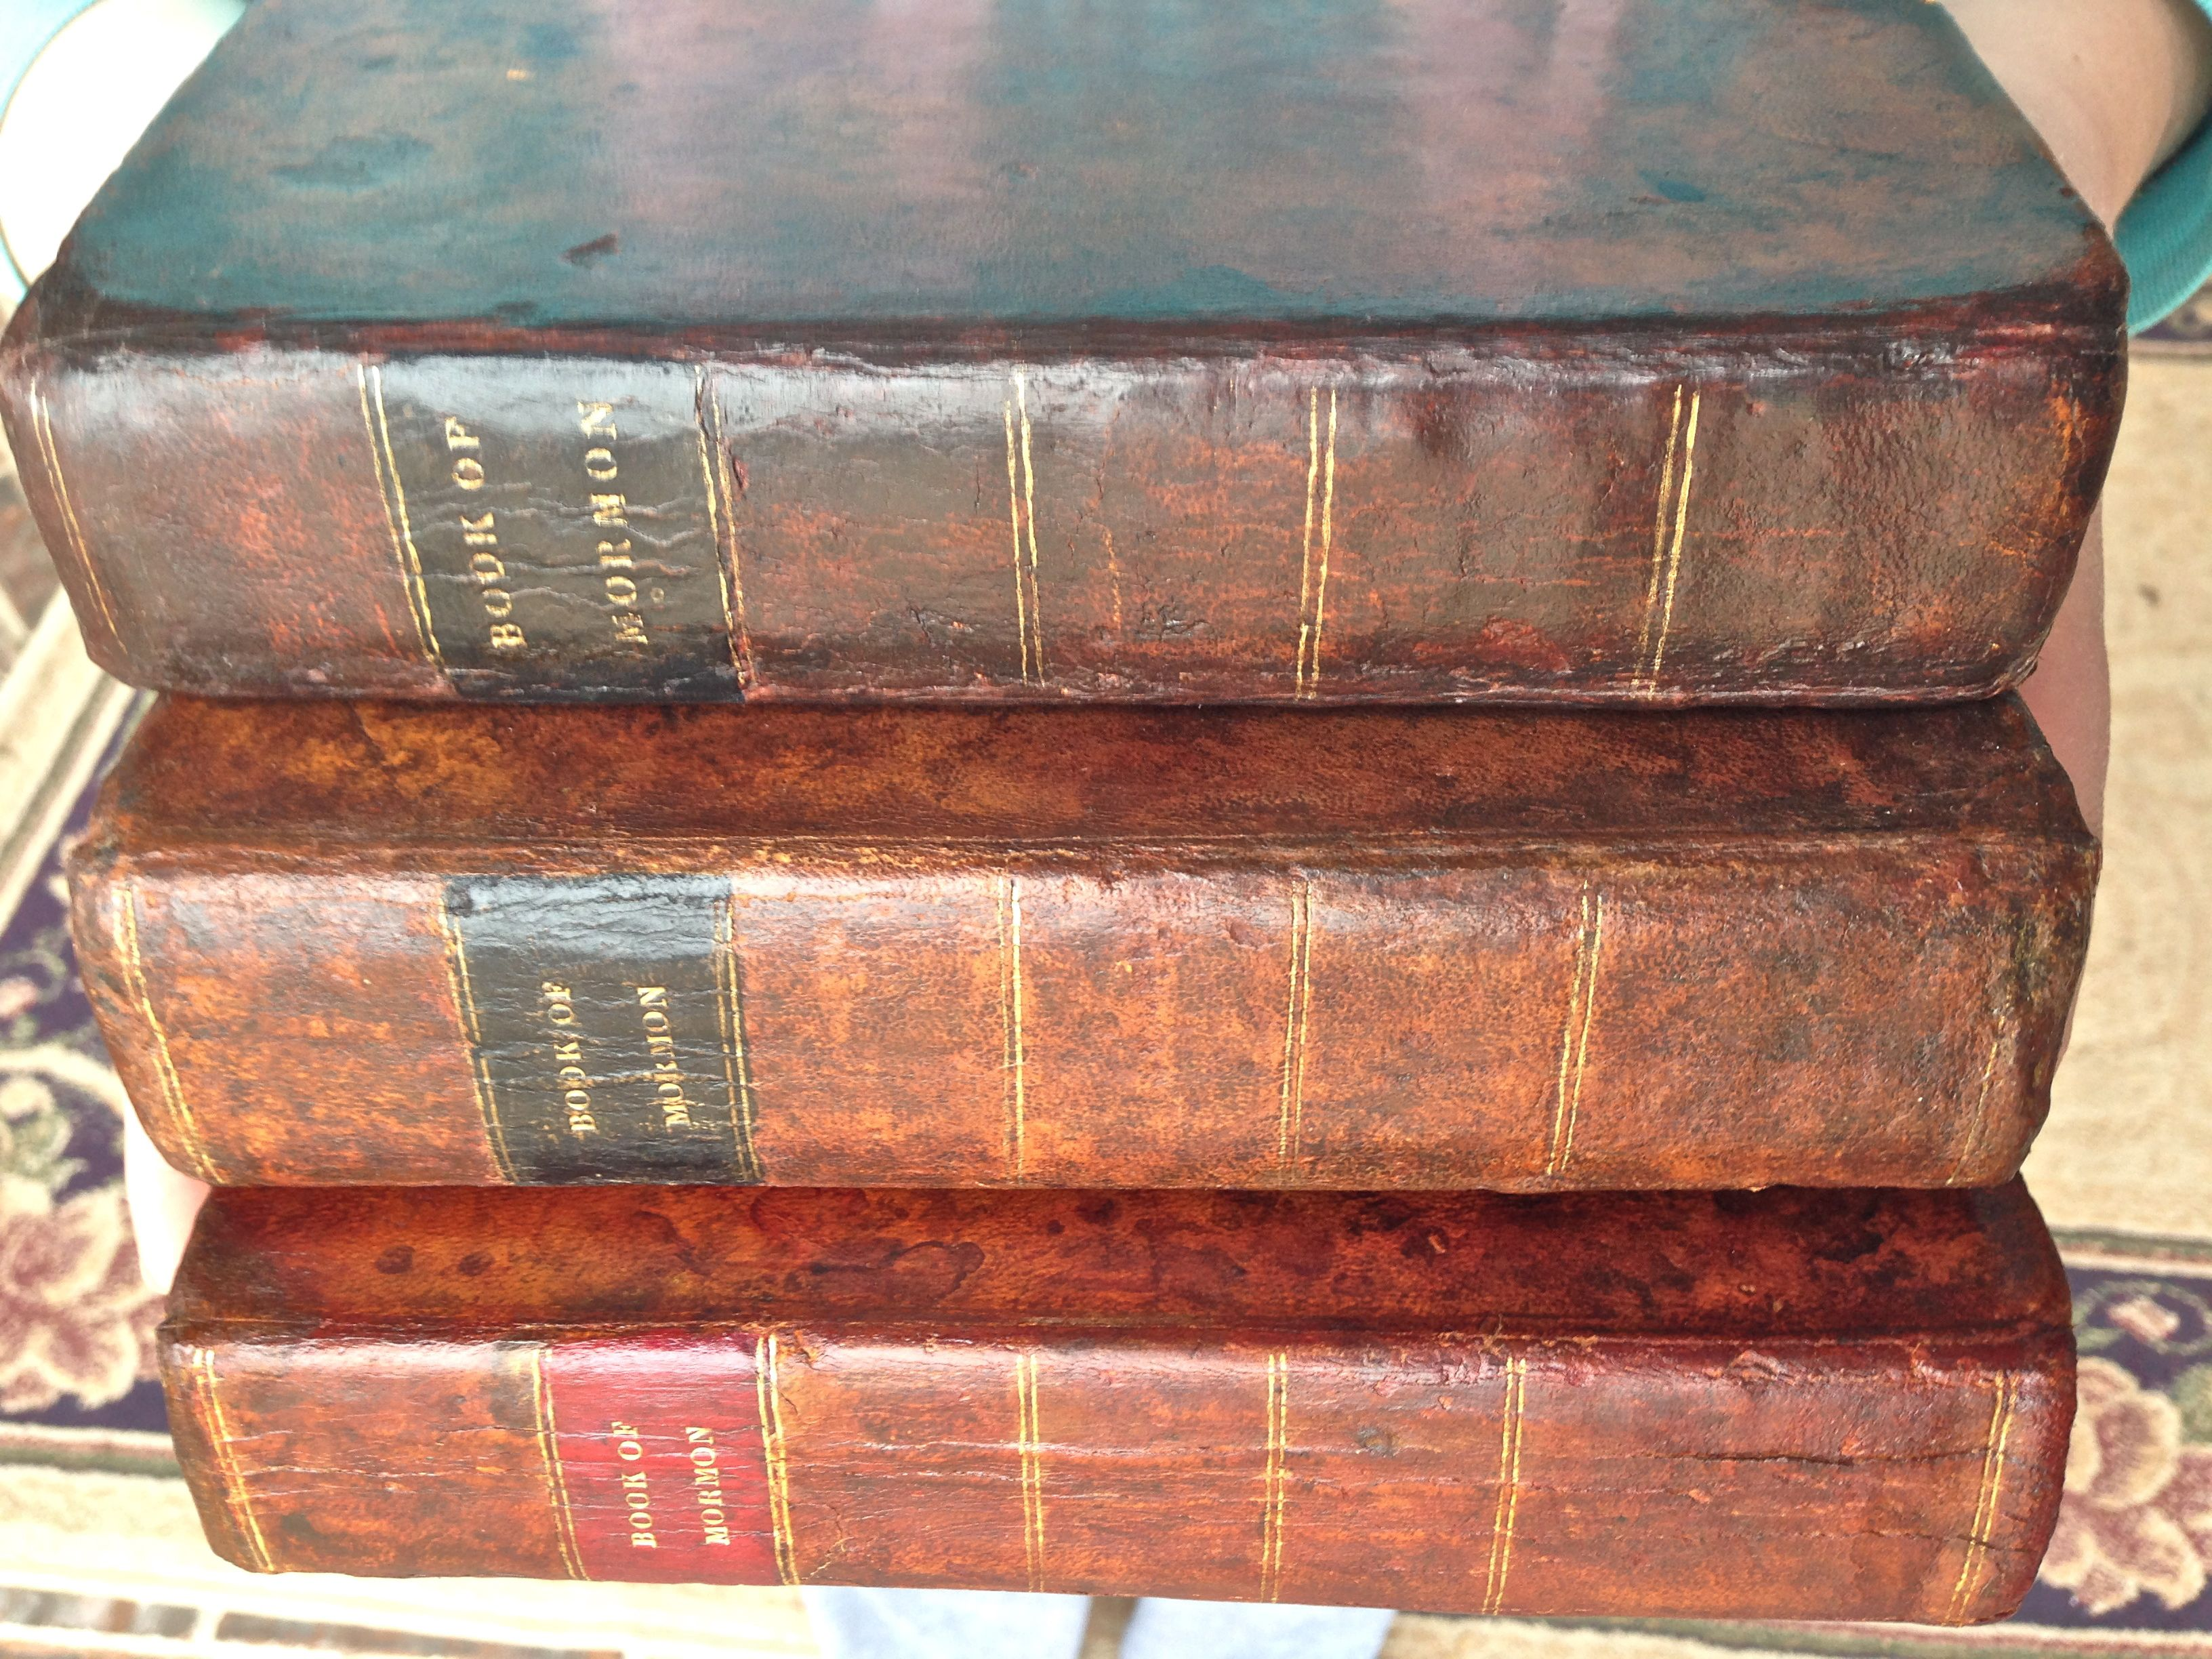 Three First Edition Copies Of The Book Of Mormon The Copy On The Bottom Is The Rare Red Label Copy Only A Few The Book Of Mormon Rare Books Book Of Mormon